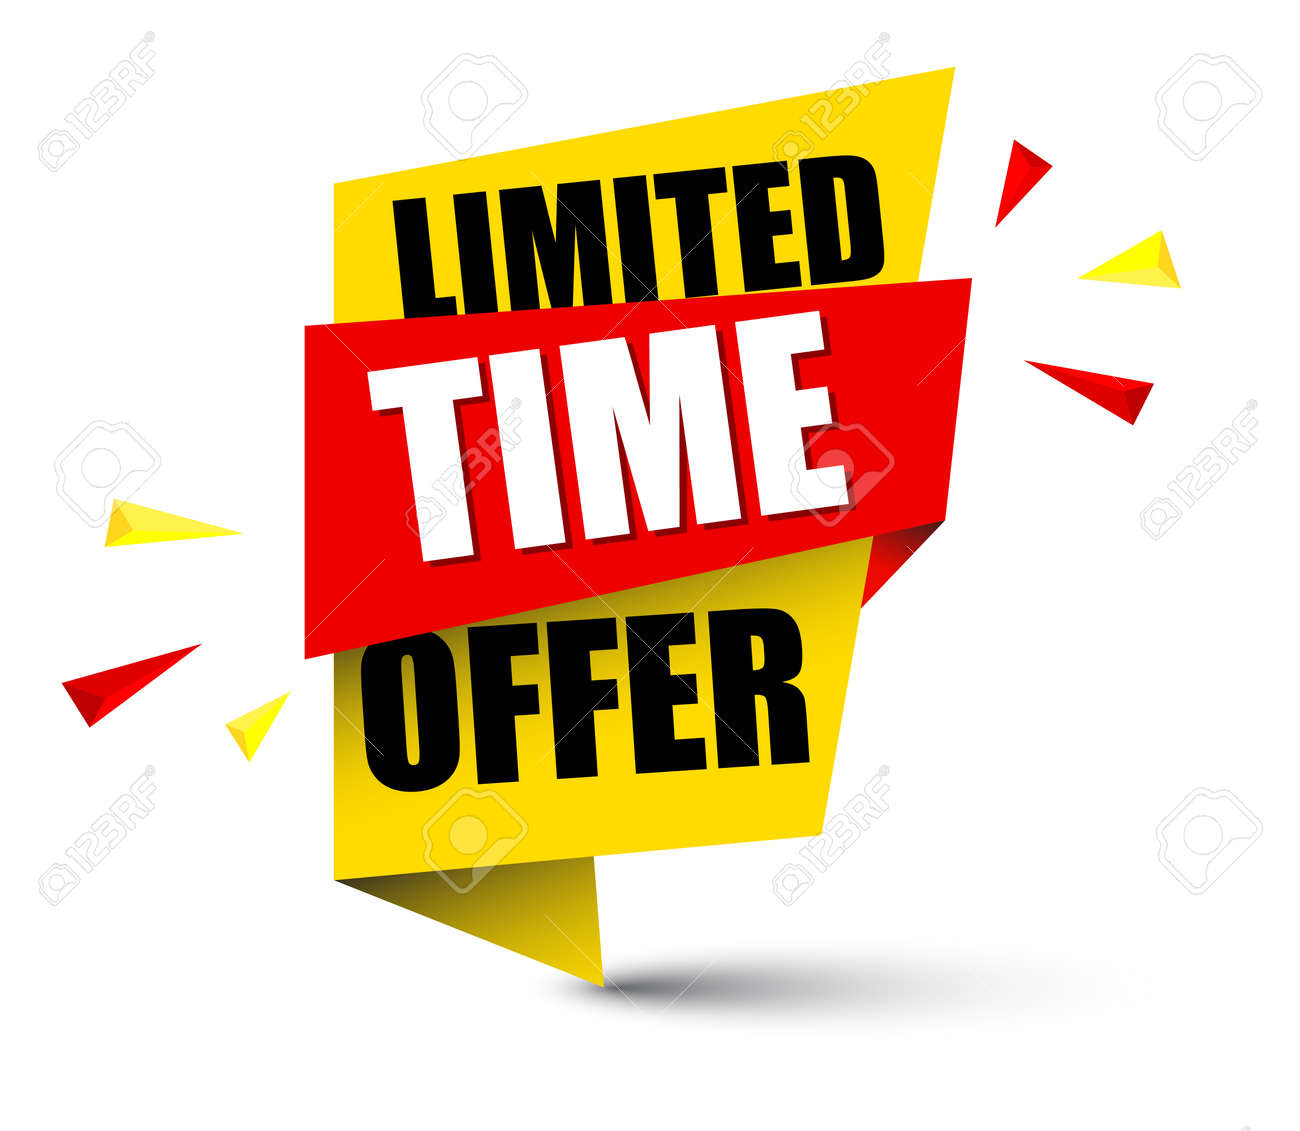 Image result for limited time offer